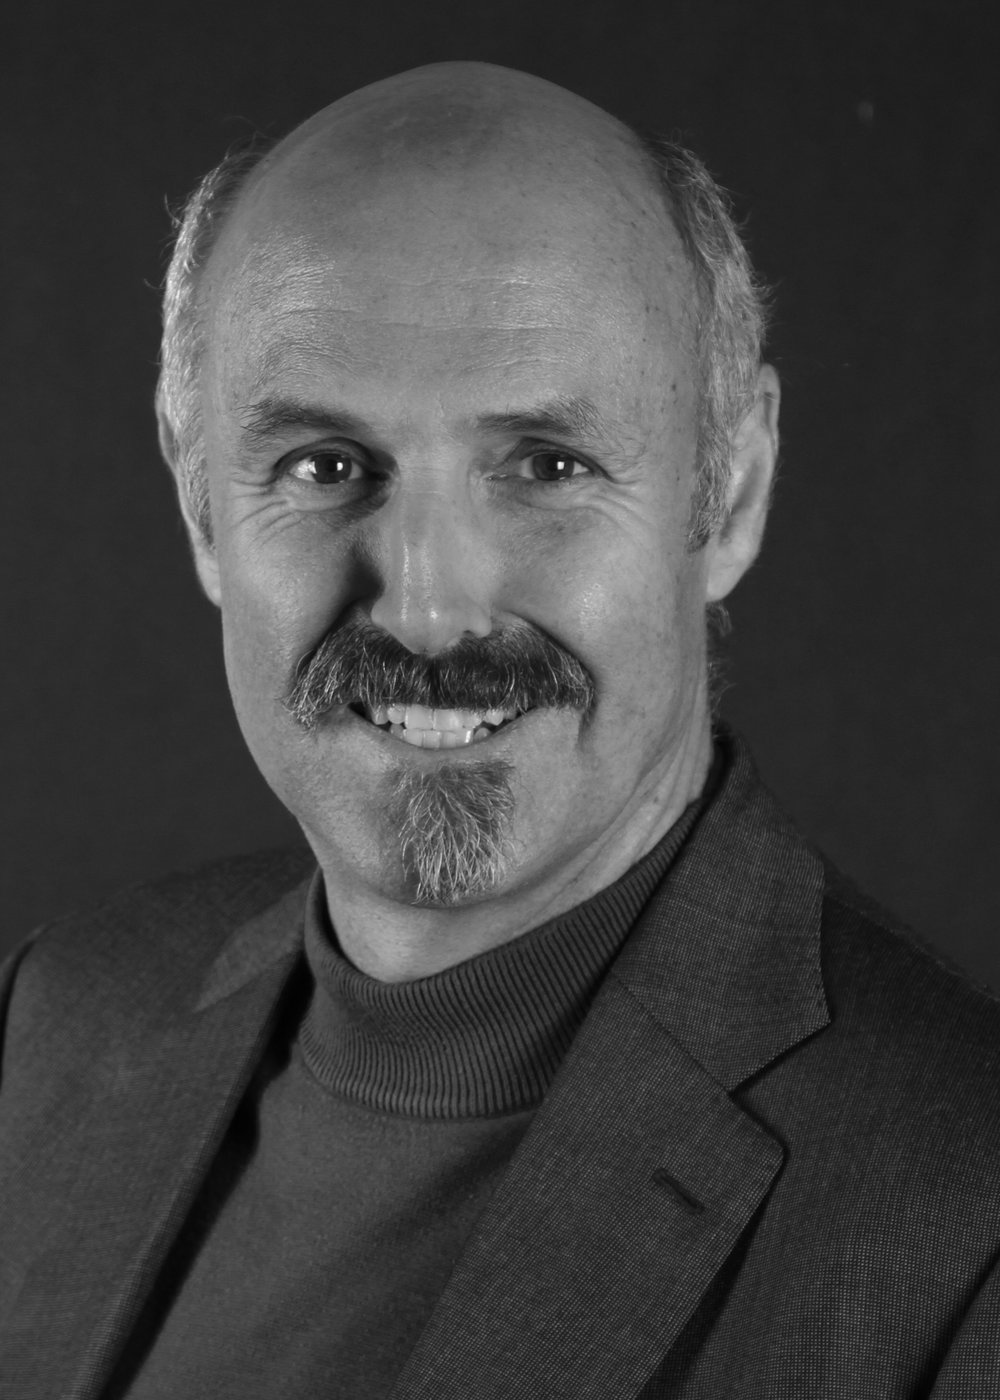 MARK NORTHCROSS